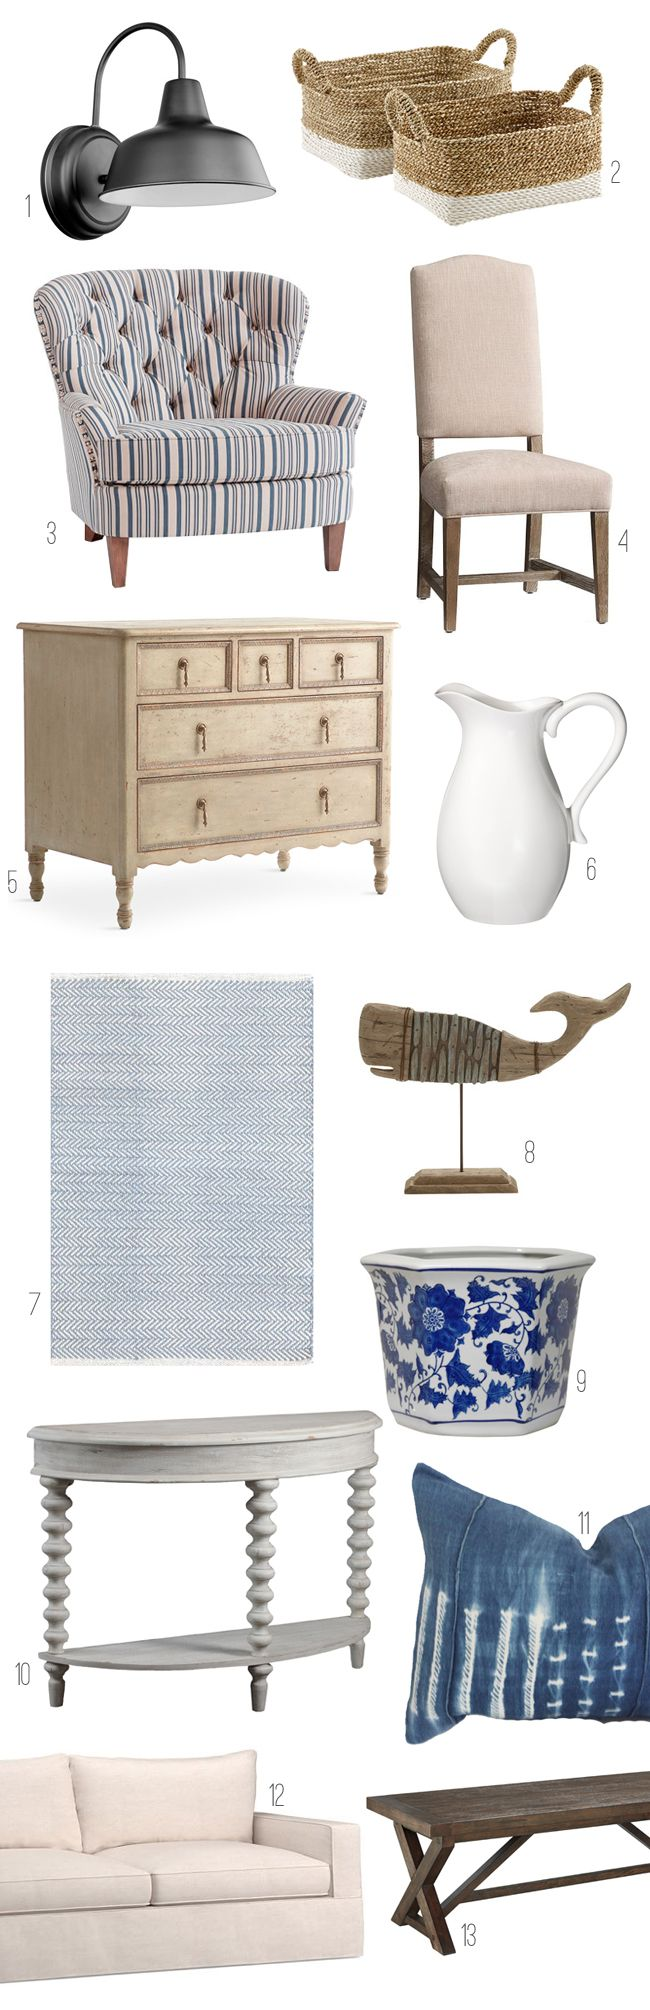 6 Take Away Tips: A Beautiful New England Home - The Inspired Room